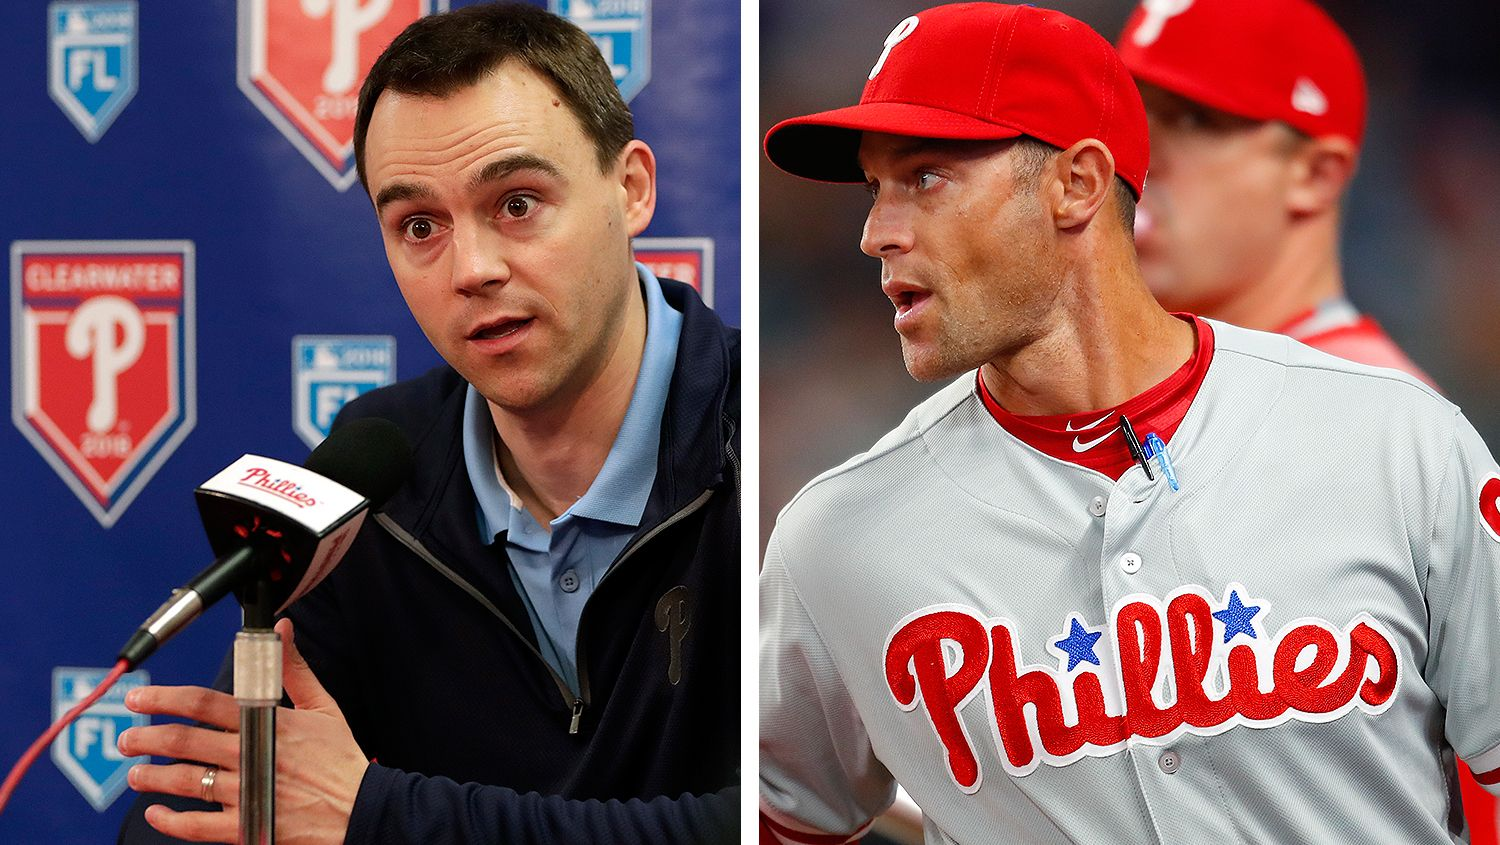 Phillies fans on Twitter seem pretty stoked about Kapler